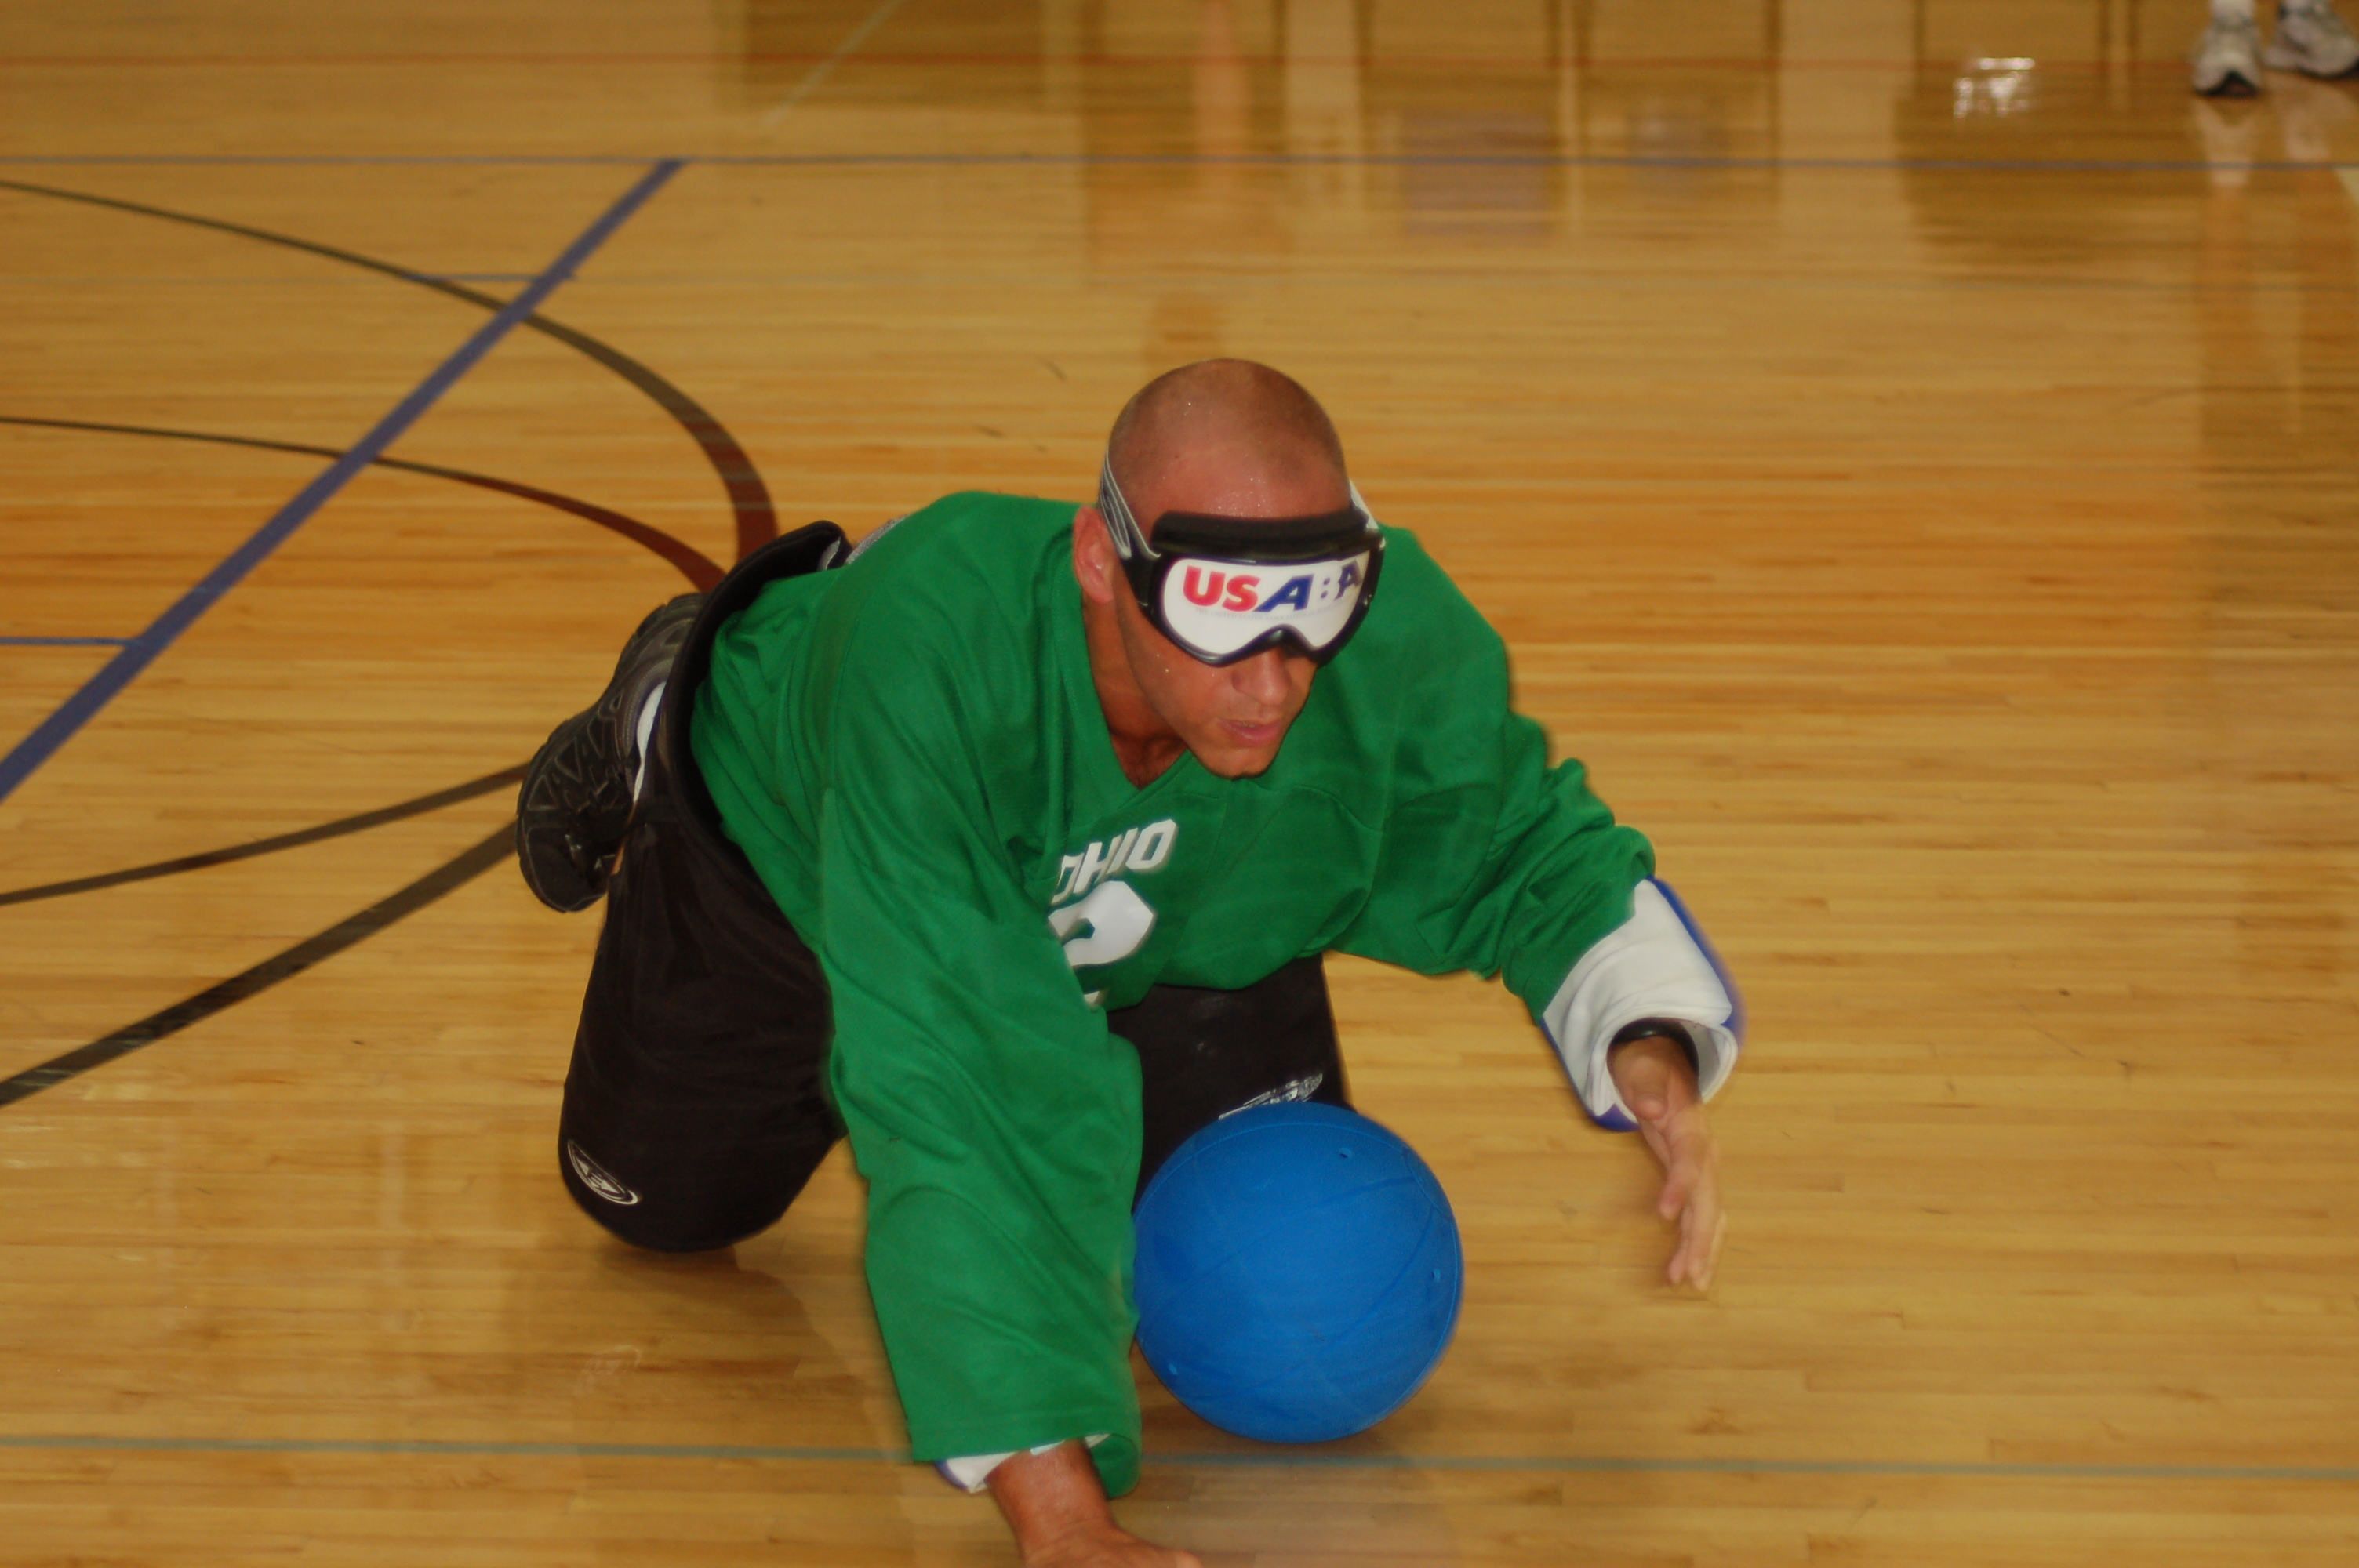 Man crawling playing Goalballl